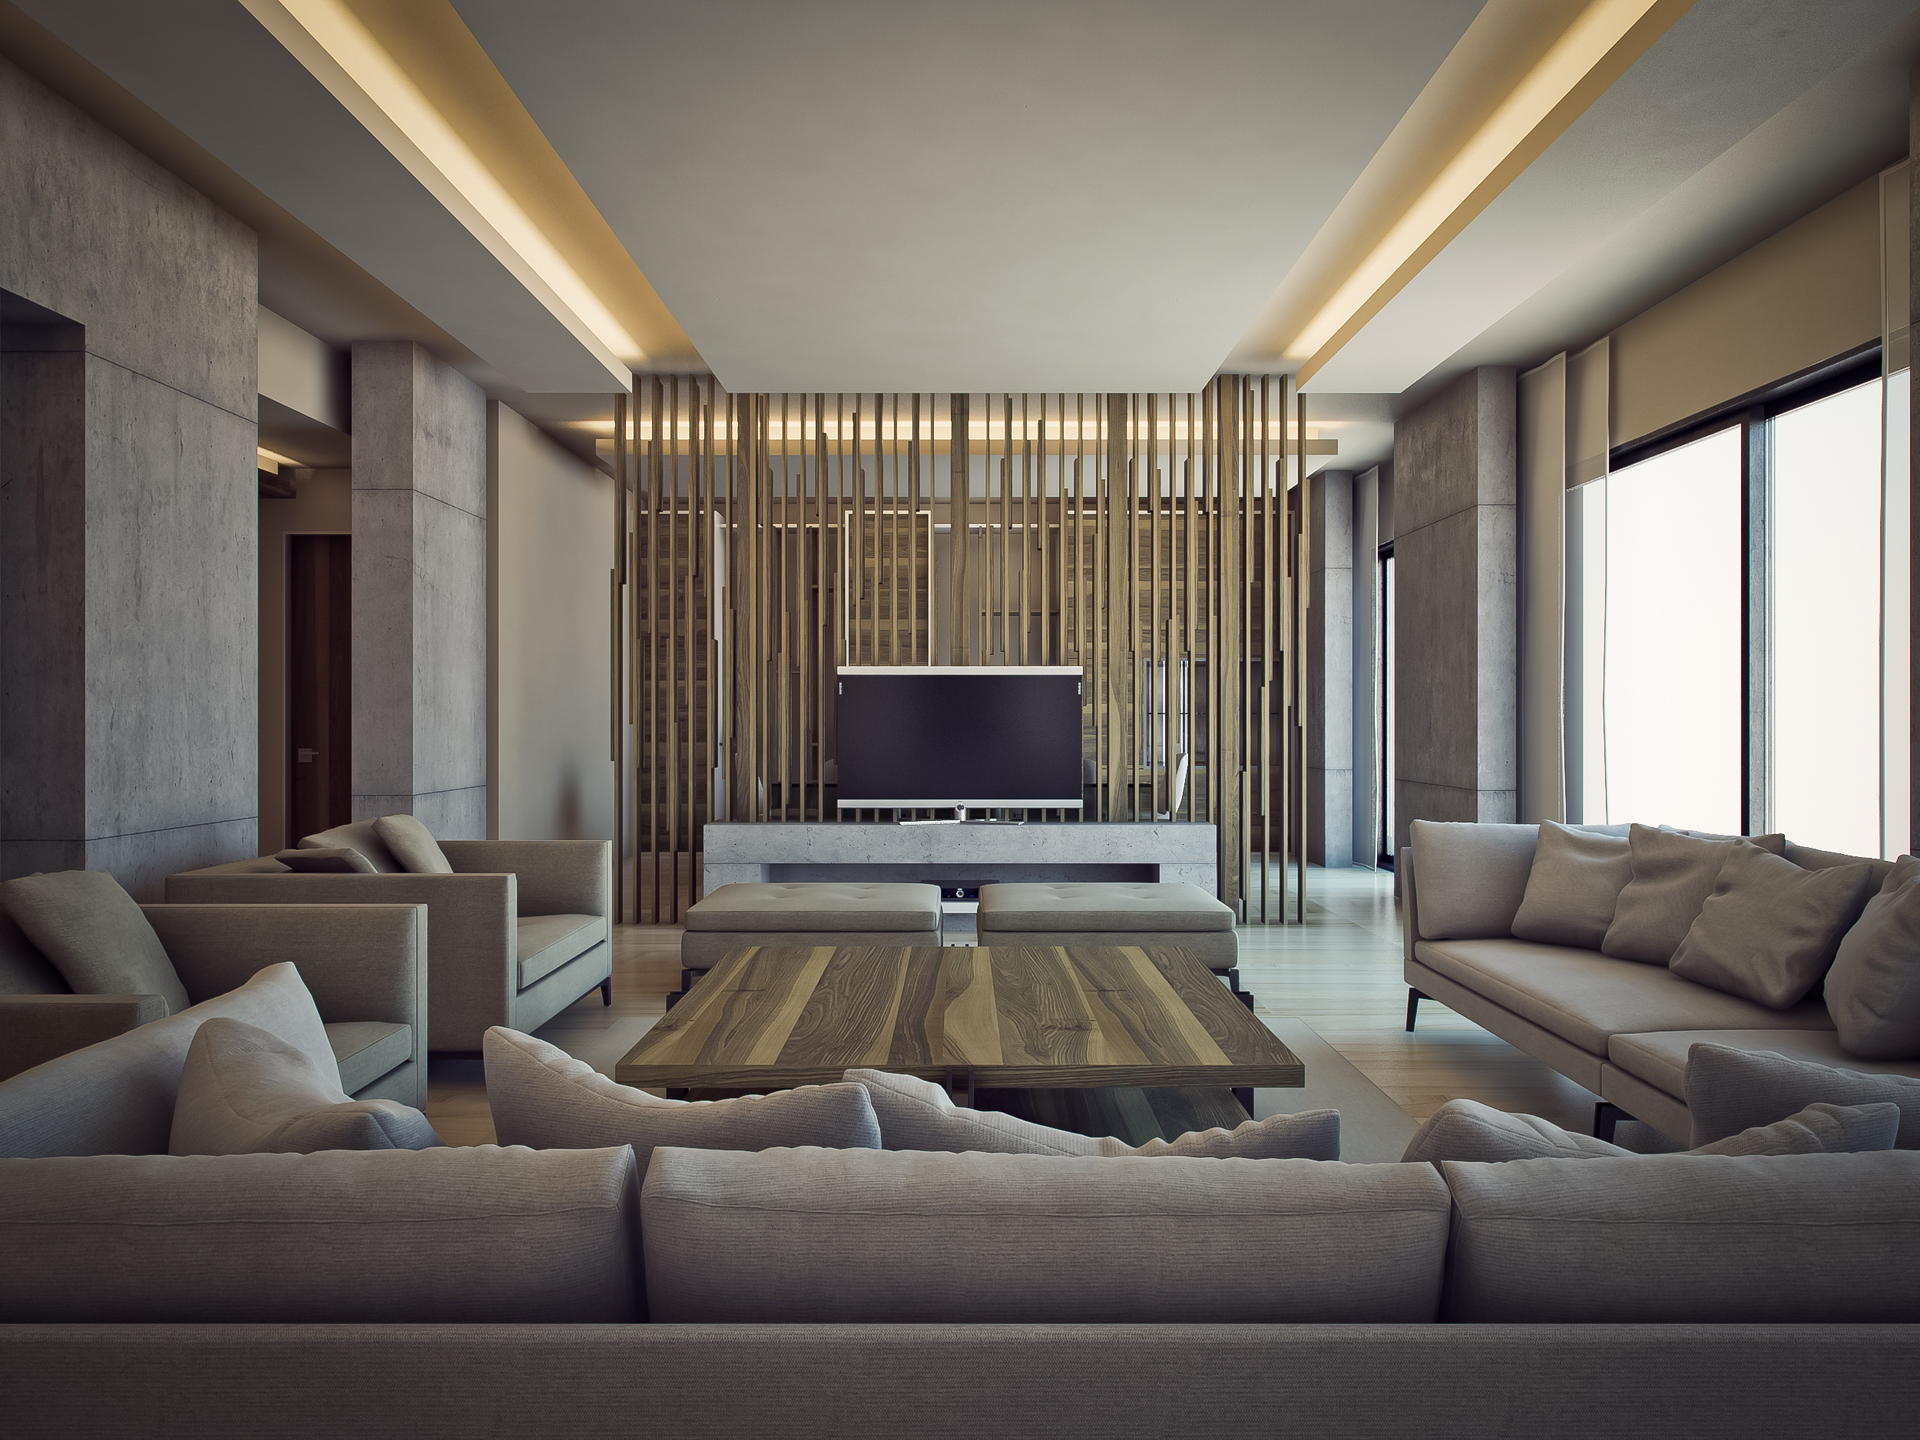 Royal Living Room. TV Wall Design